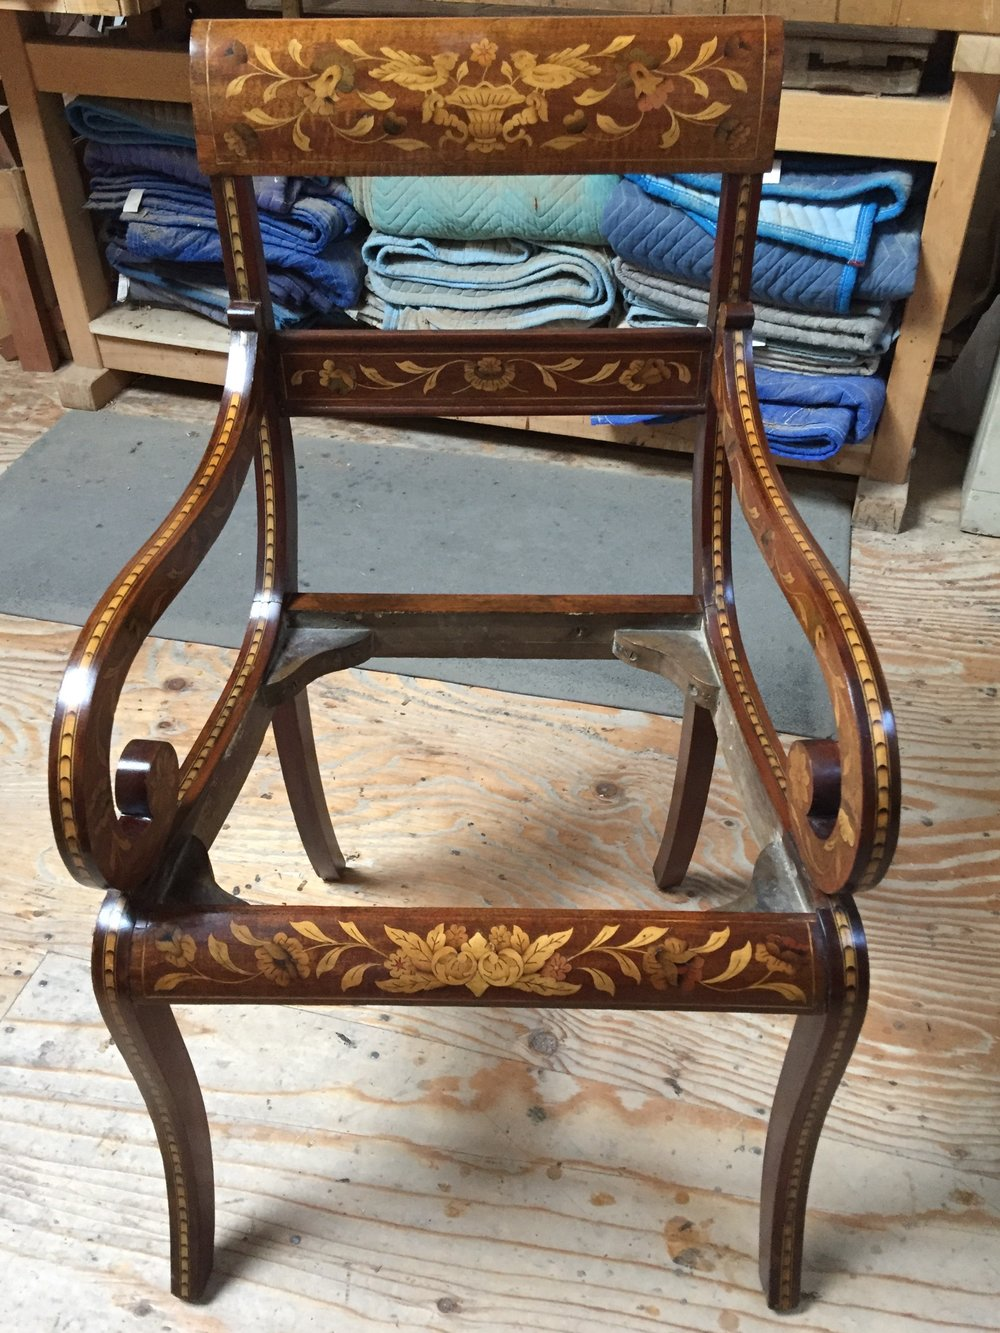 Restored armchair.